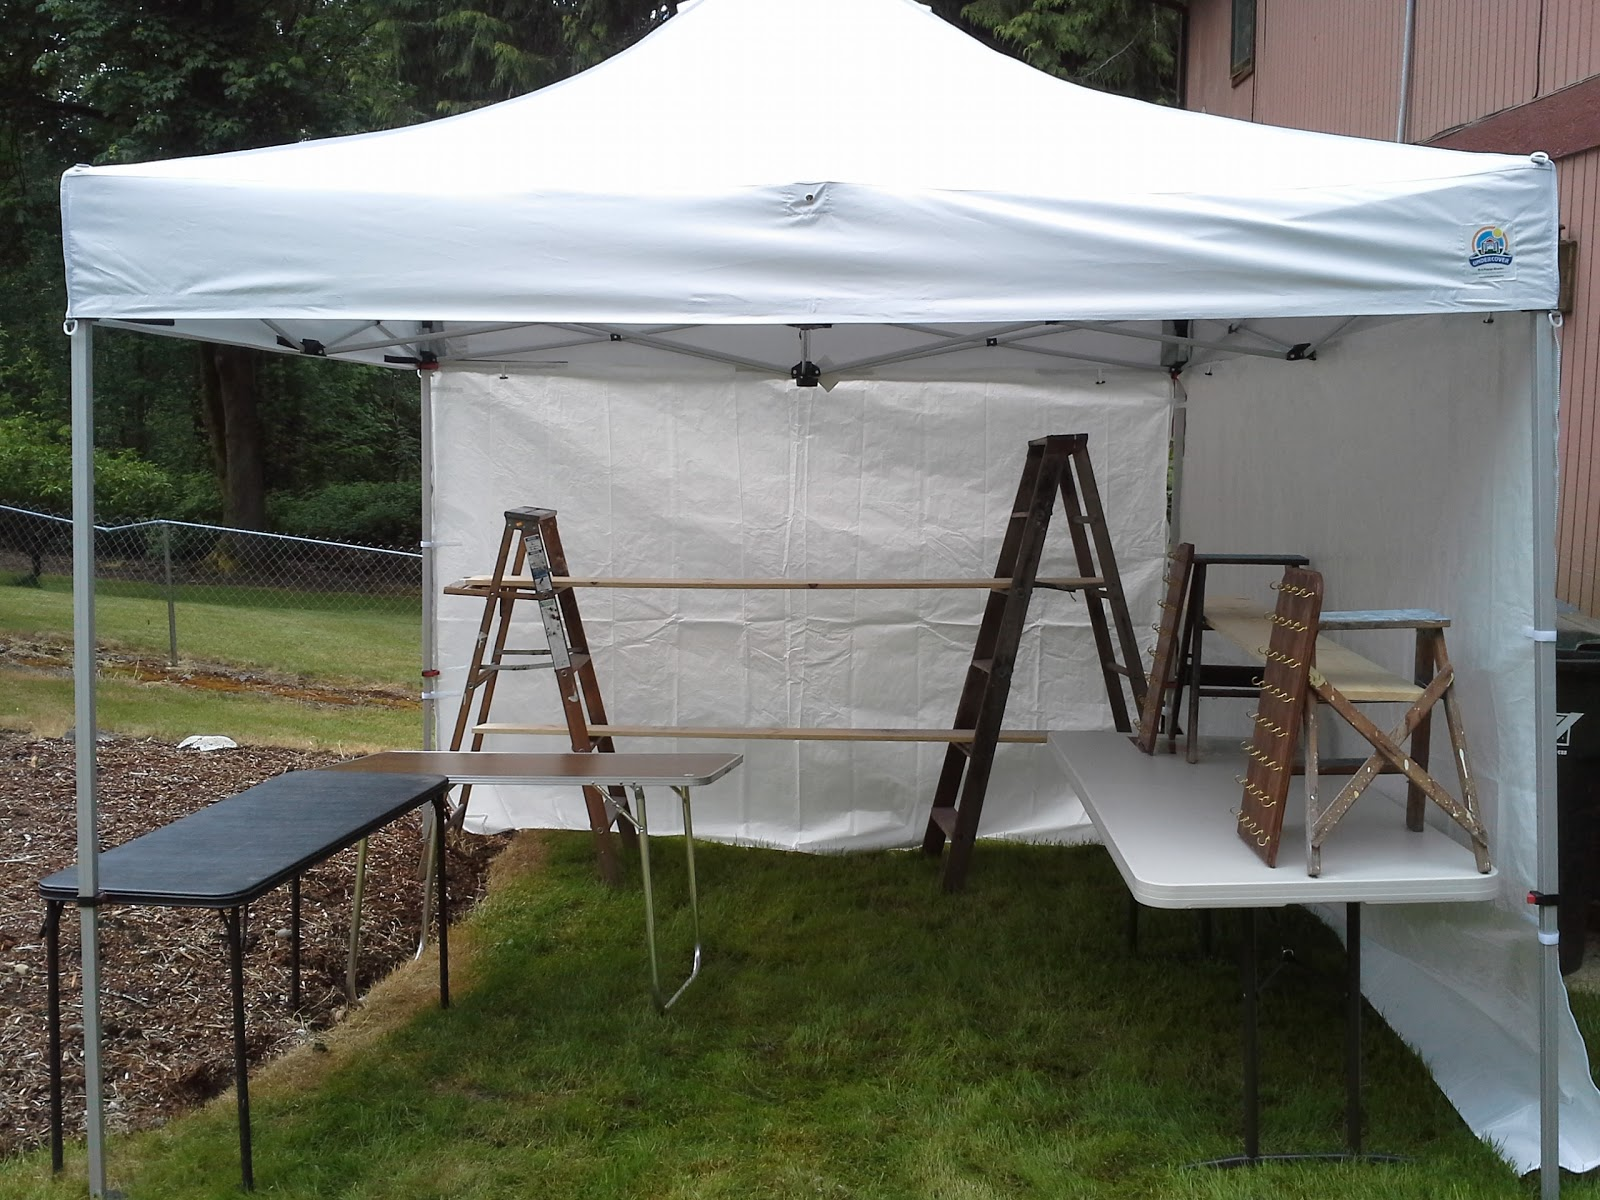 Re-Covered Treasures Blog: Working on my booth set-up and